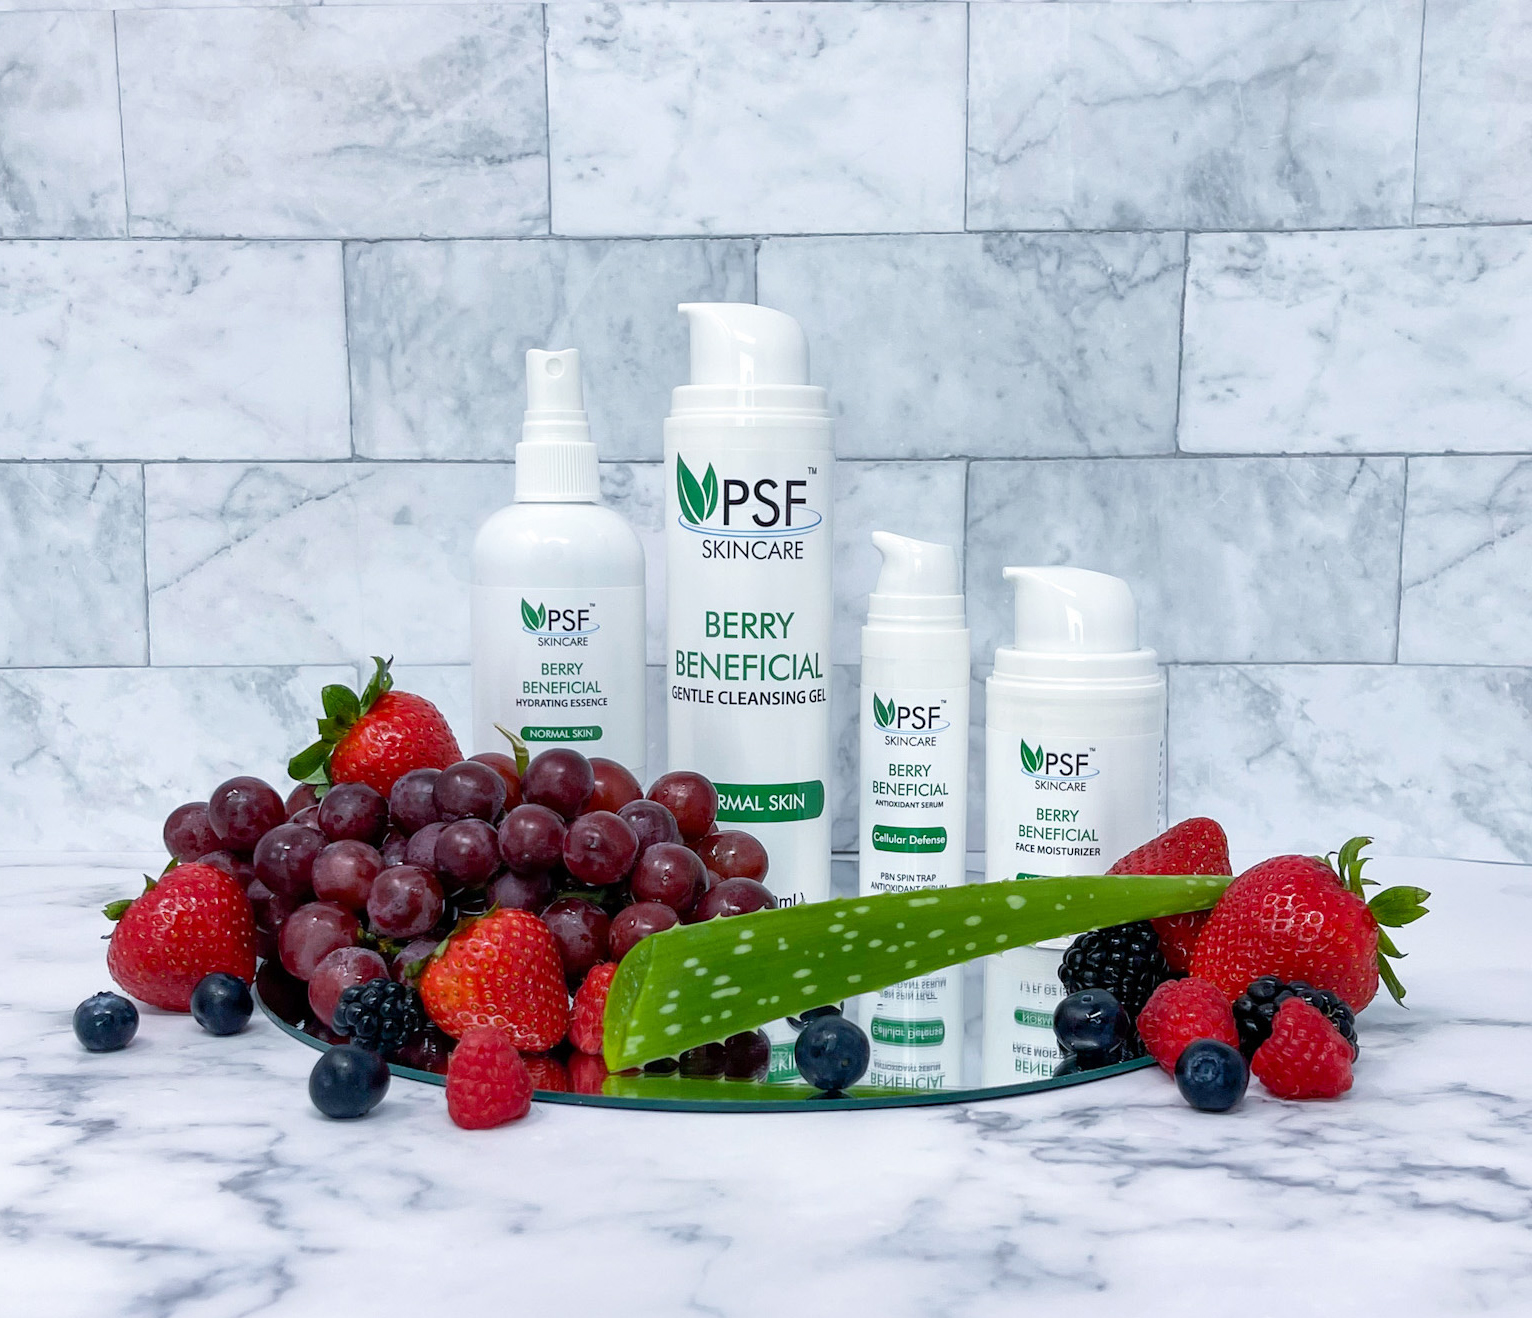 psf-skincare-berry-beneficial-skin-line.jpg